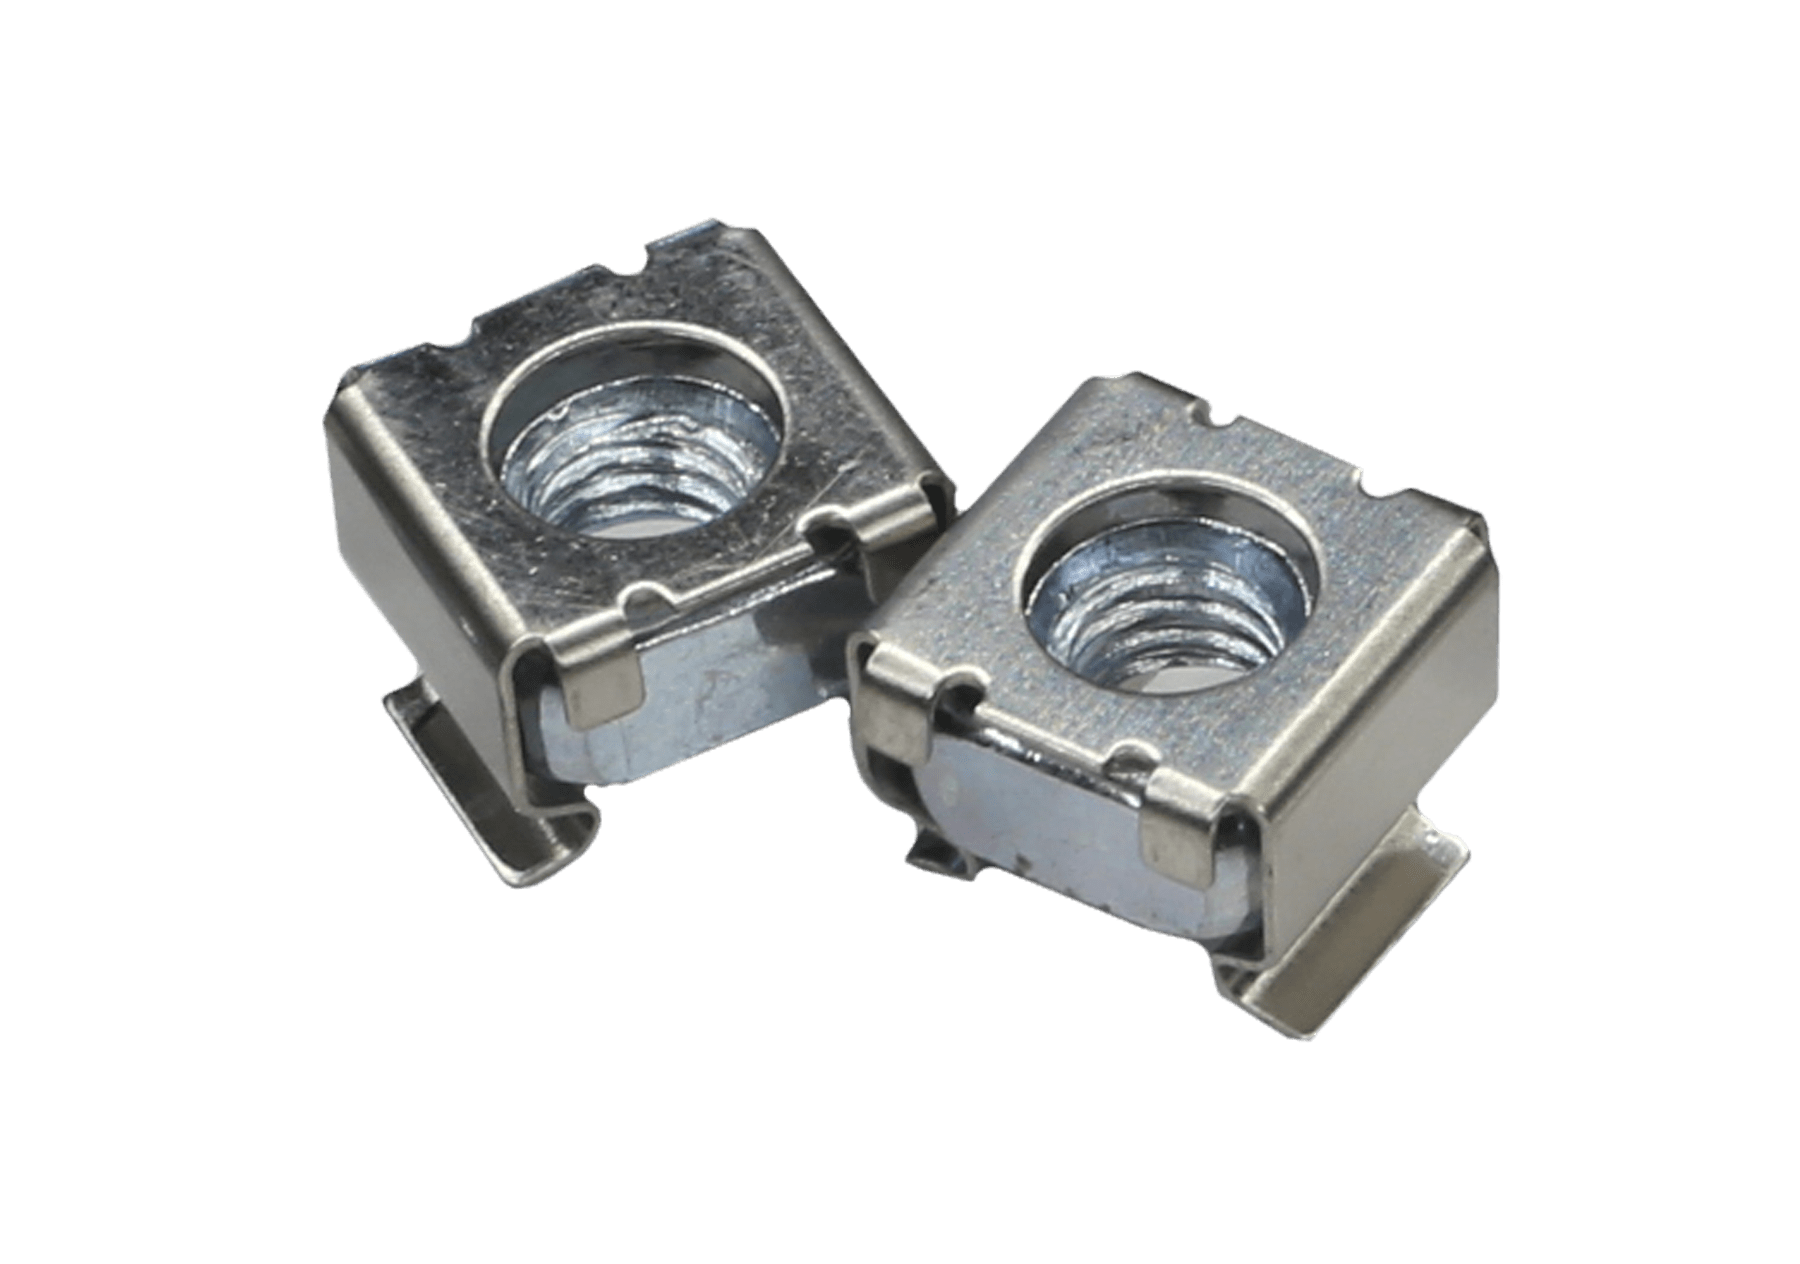 KM600A - M6 cage nut for 2.0 - 3.5 mm plate thickness